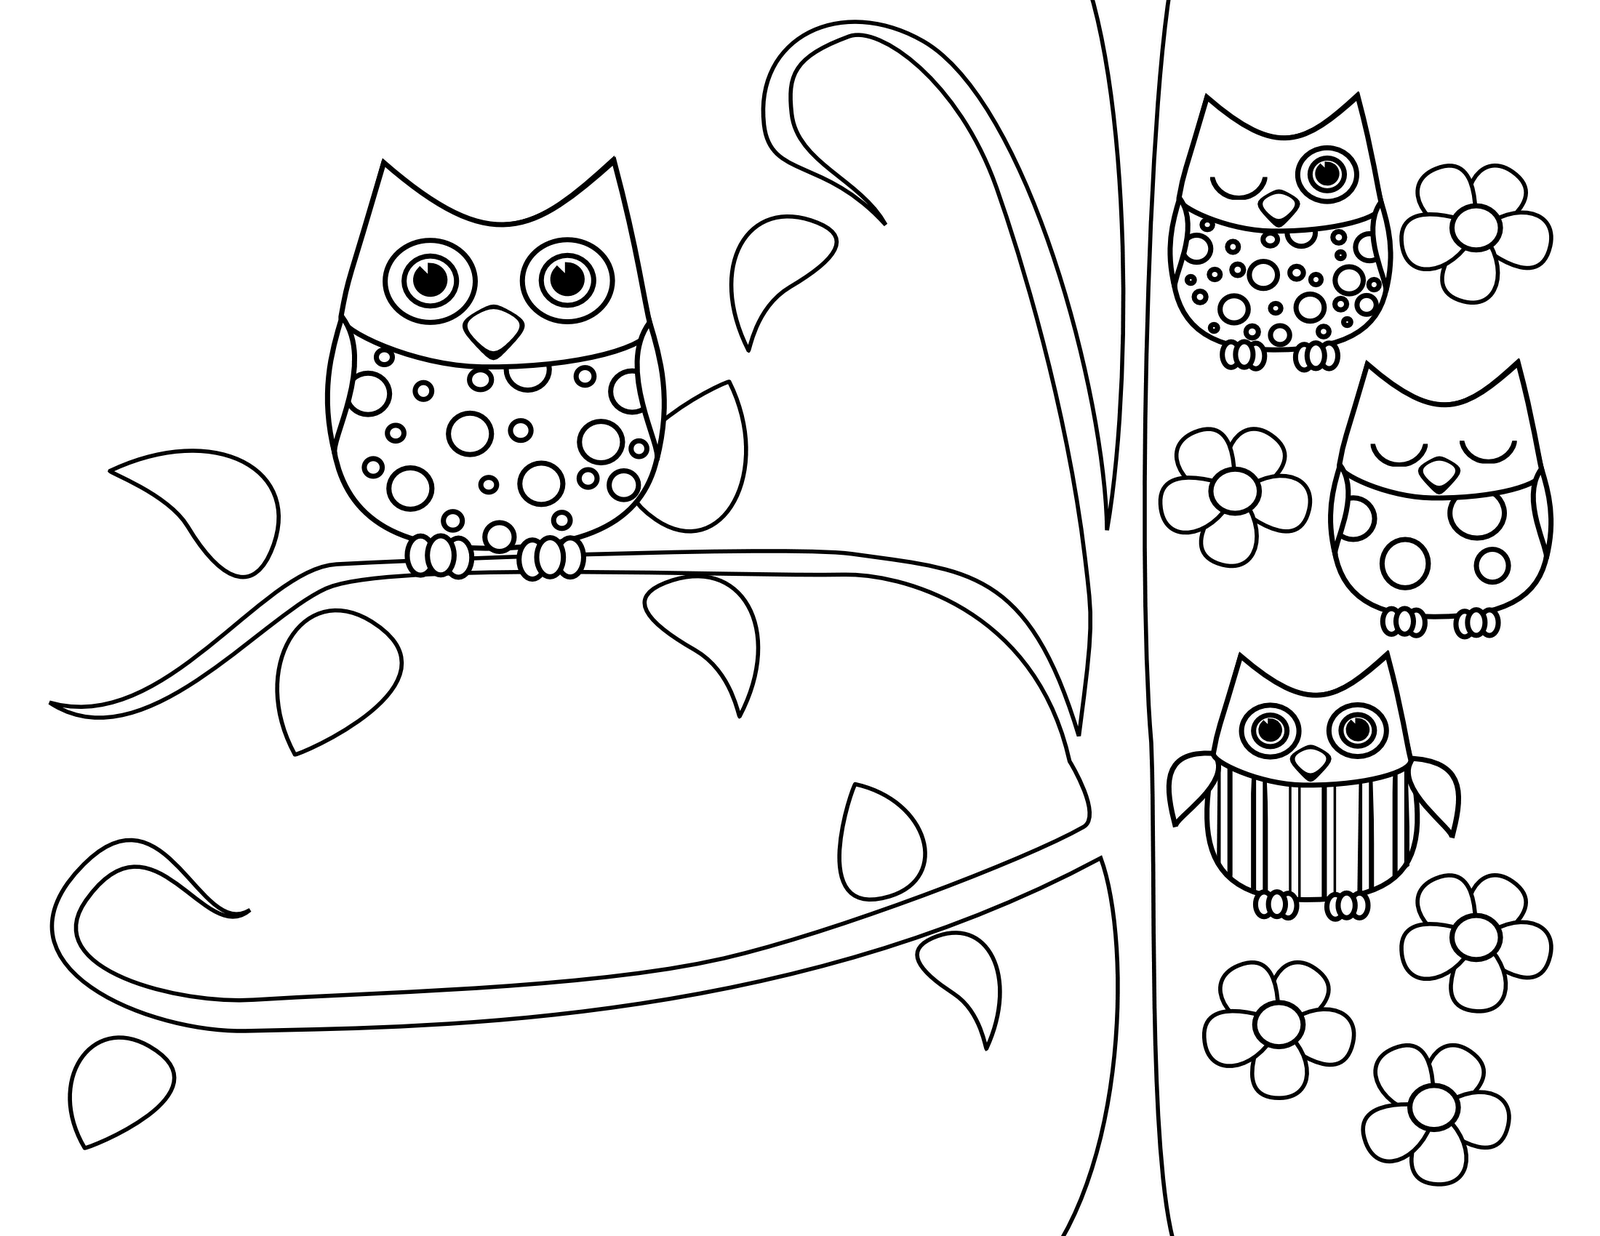 Fun Owls Coloring Pages